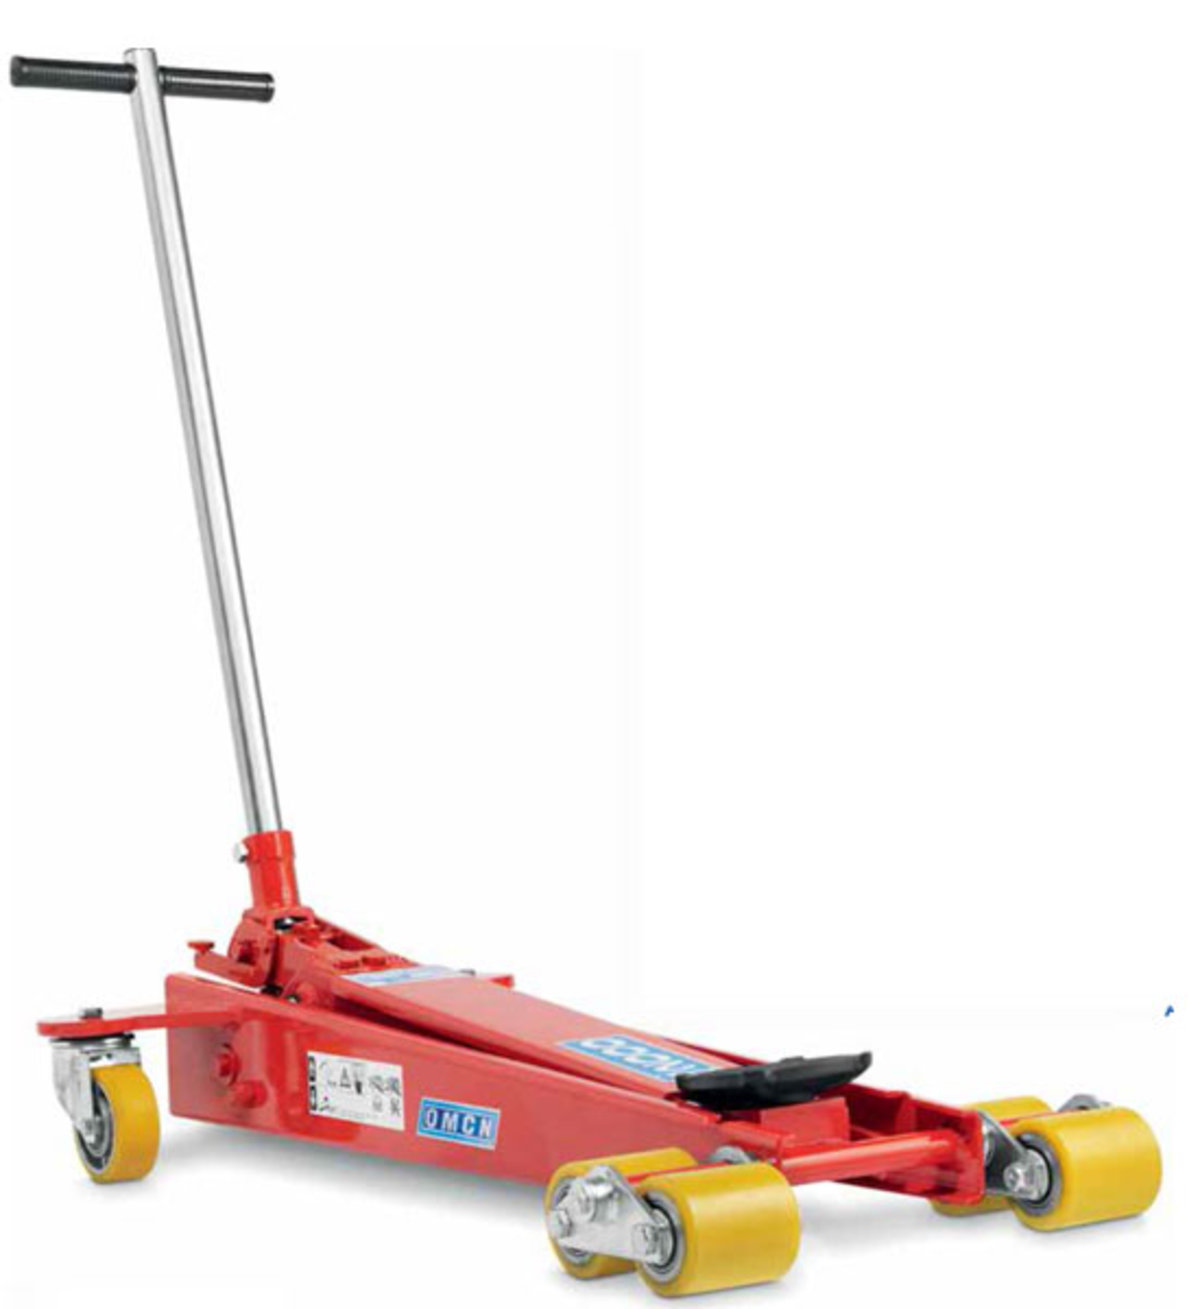 OMCN Hydraulic Jack 2.0 Ton Capacity - Jacks and Lifts ...